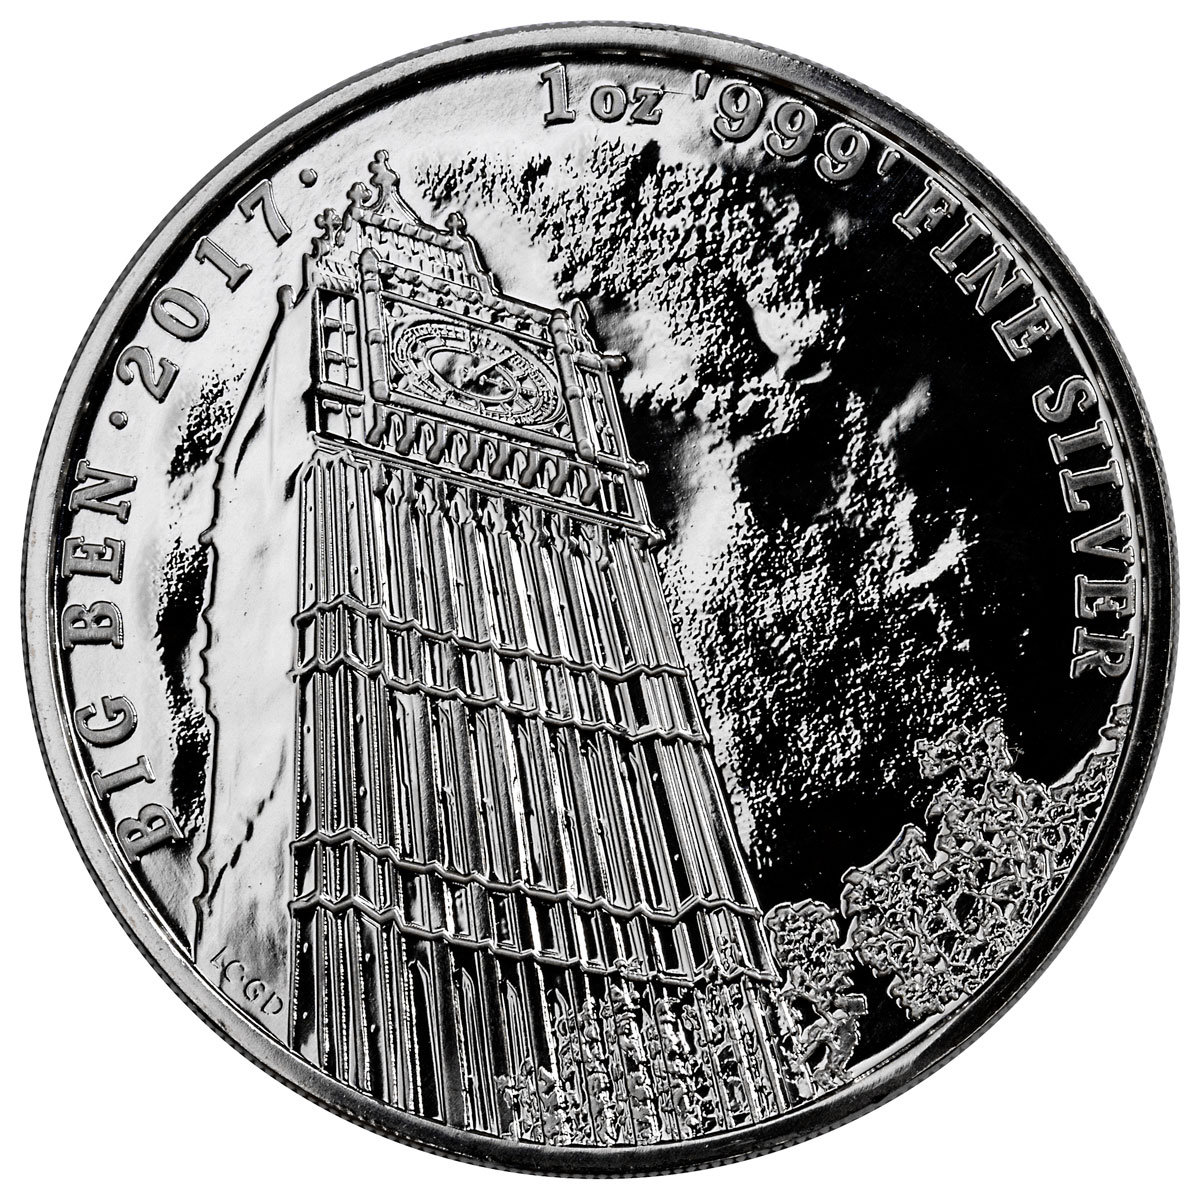 2017 Great Britain Landmarks of Britain - Big Ben 1 oz Silver £2 Coin GEM BU Original Mint Capsule